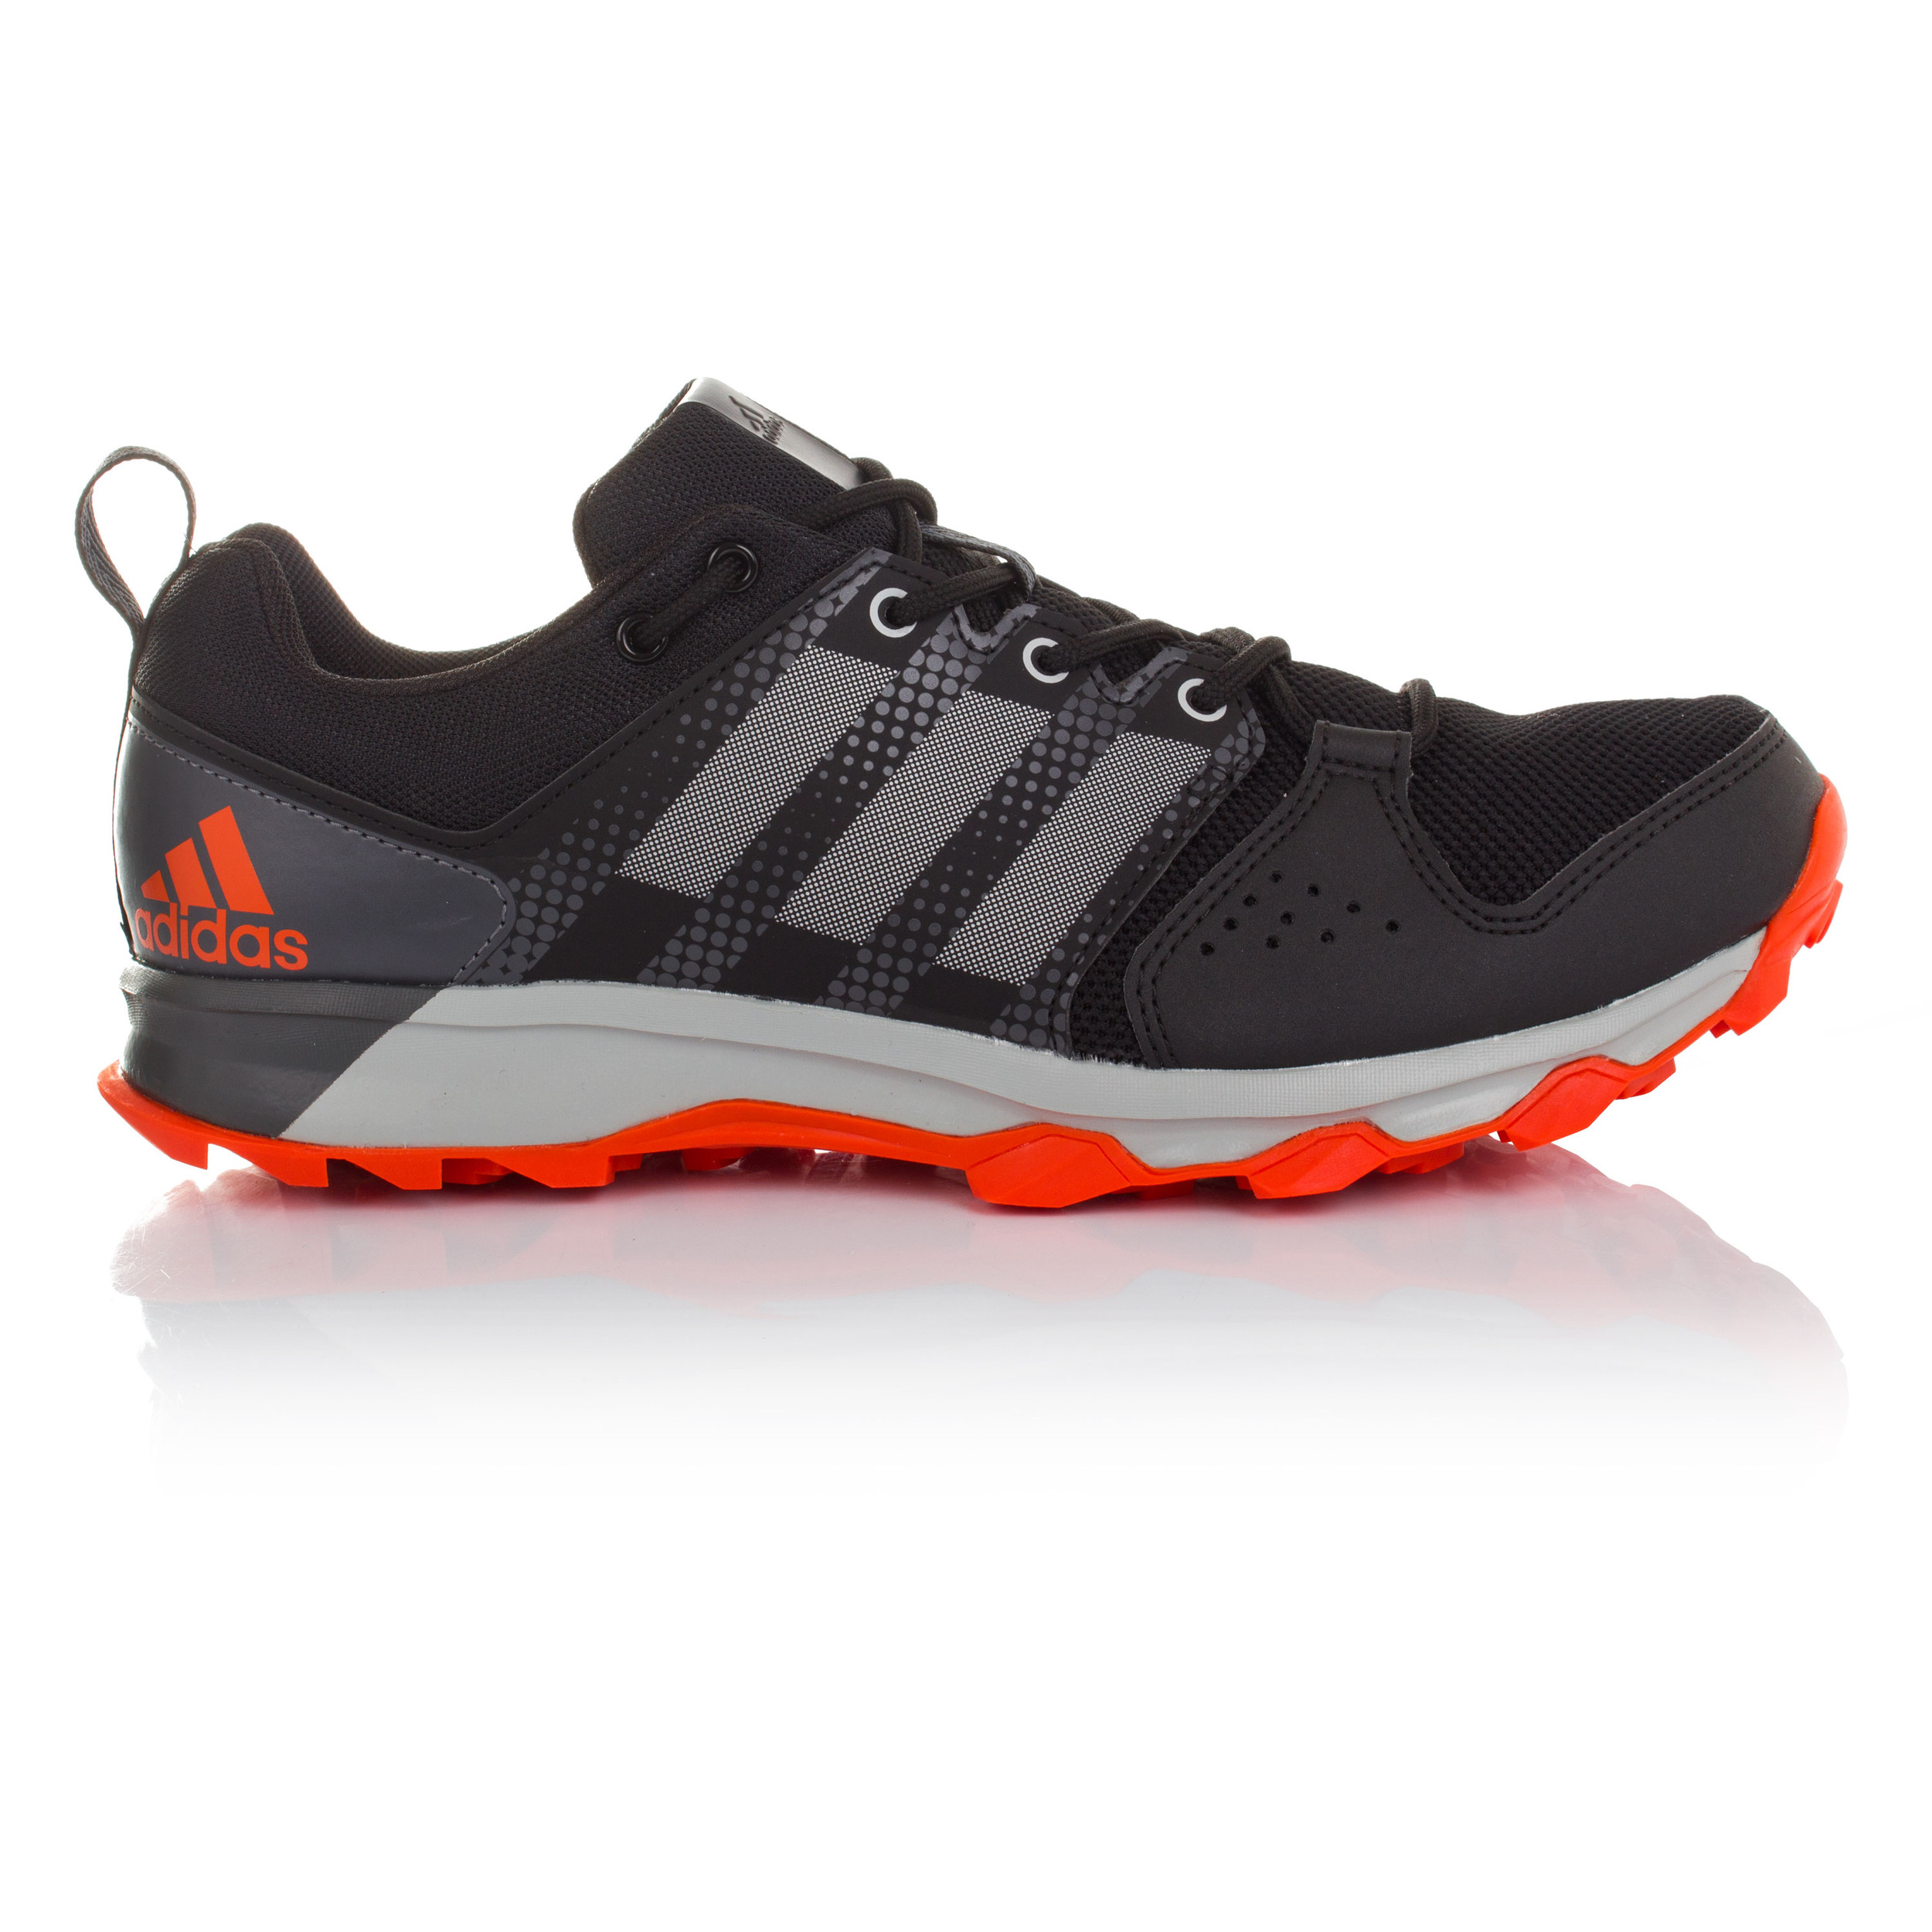 Adidas Galaxy Mens Trail Running Shoes